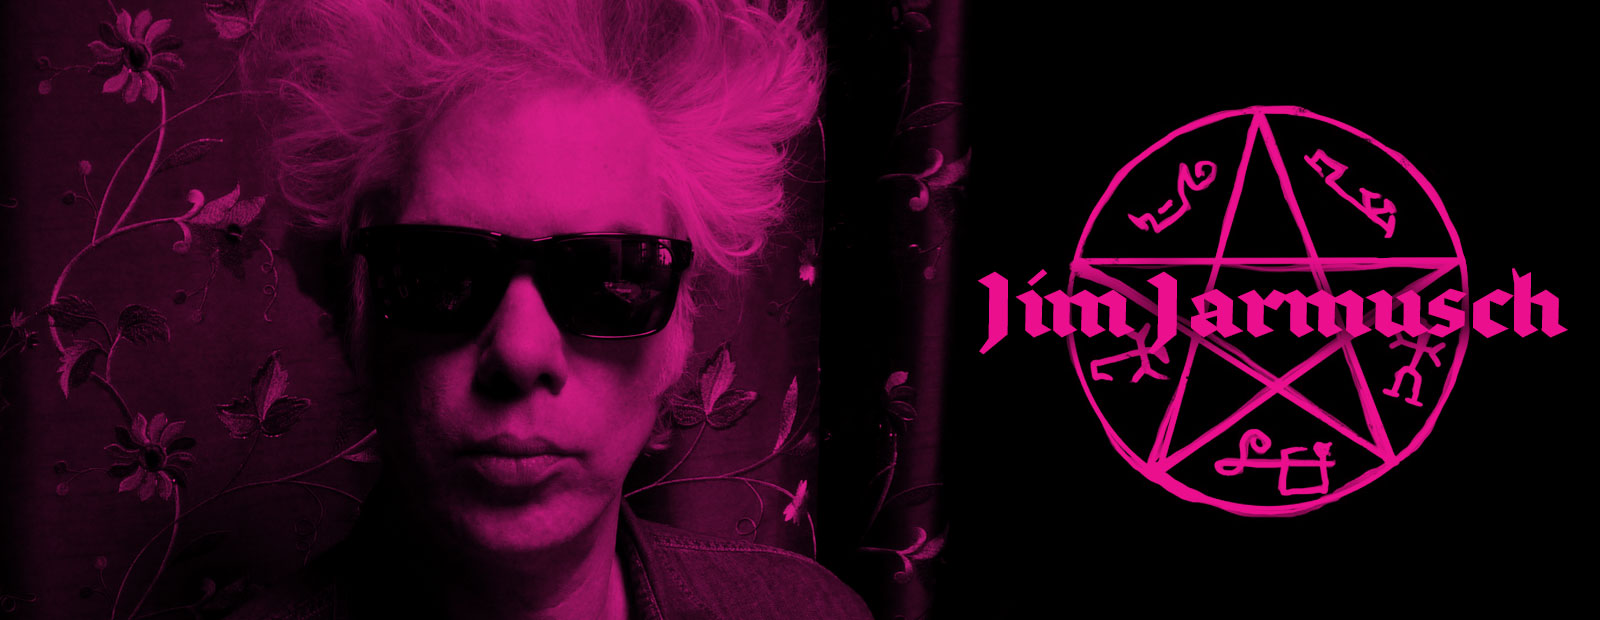 Jim Jarmusch Blog Heading